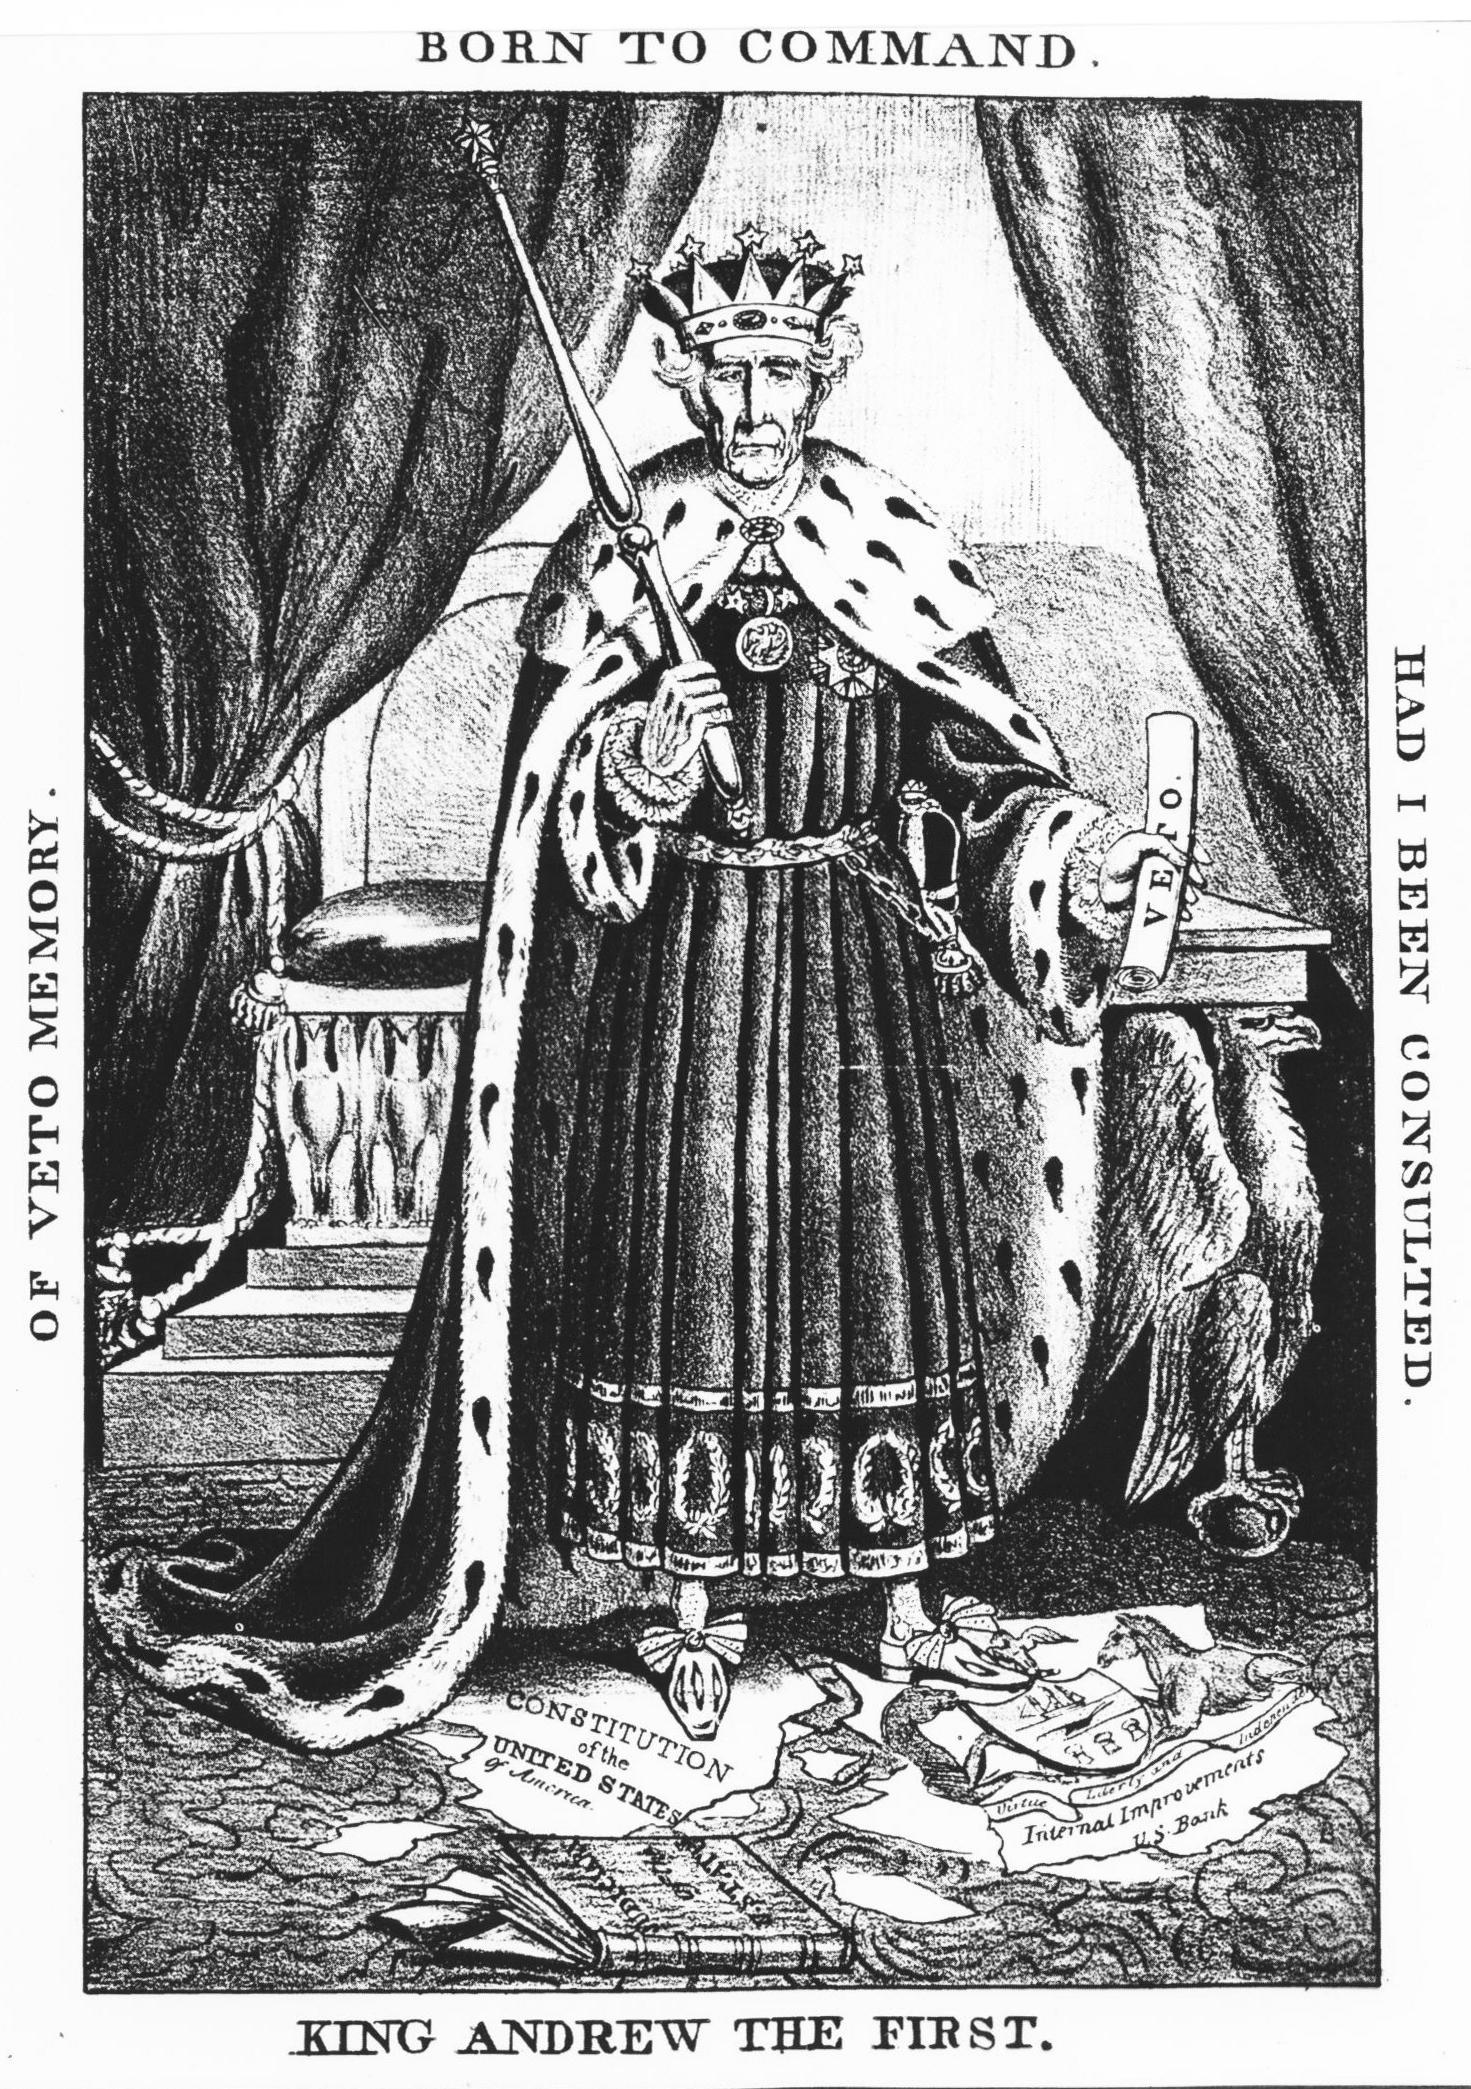 King_Andrew_the_First_(political_cartoon_of_President_Andrew_Jackson)